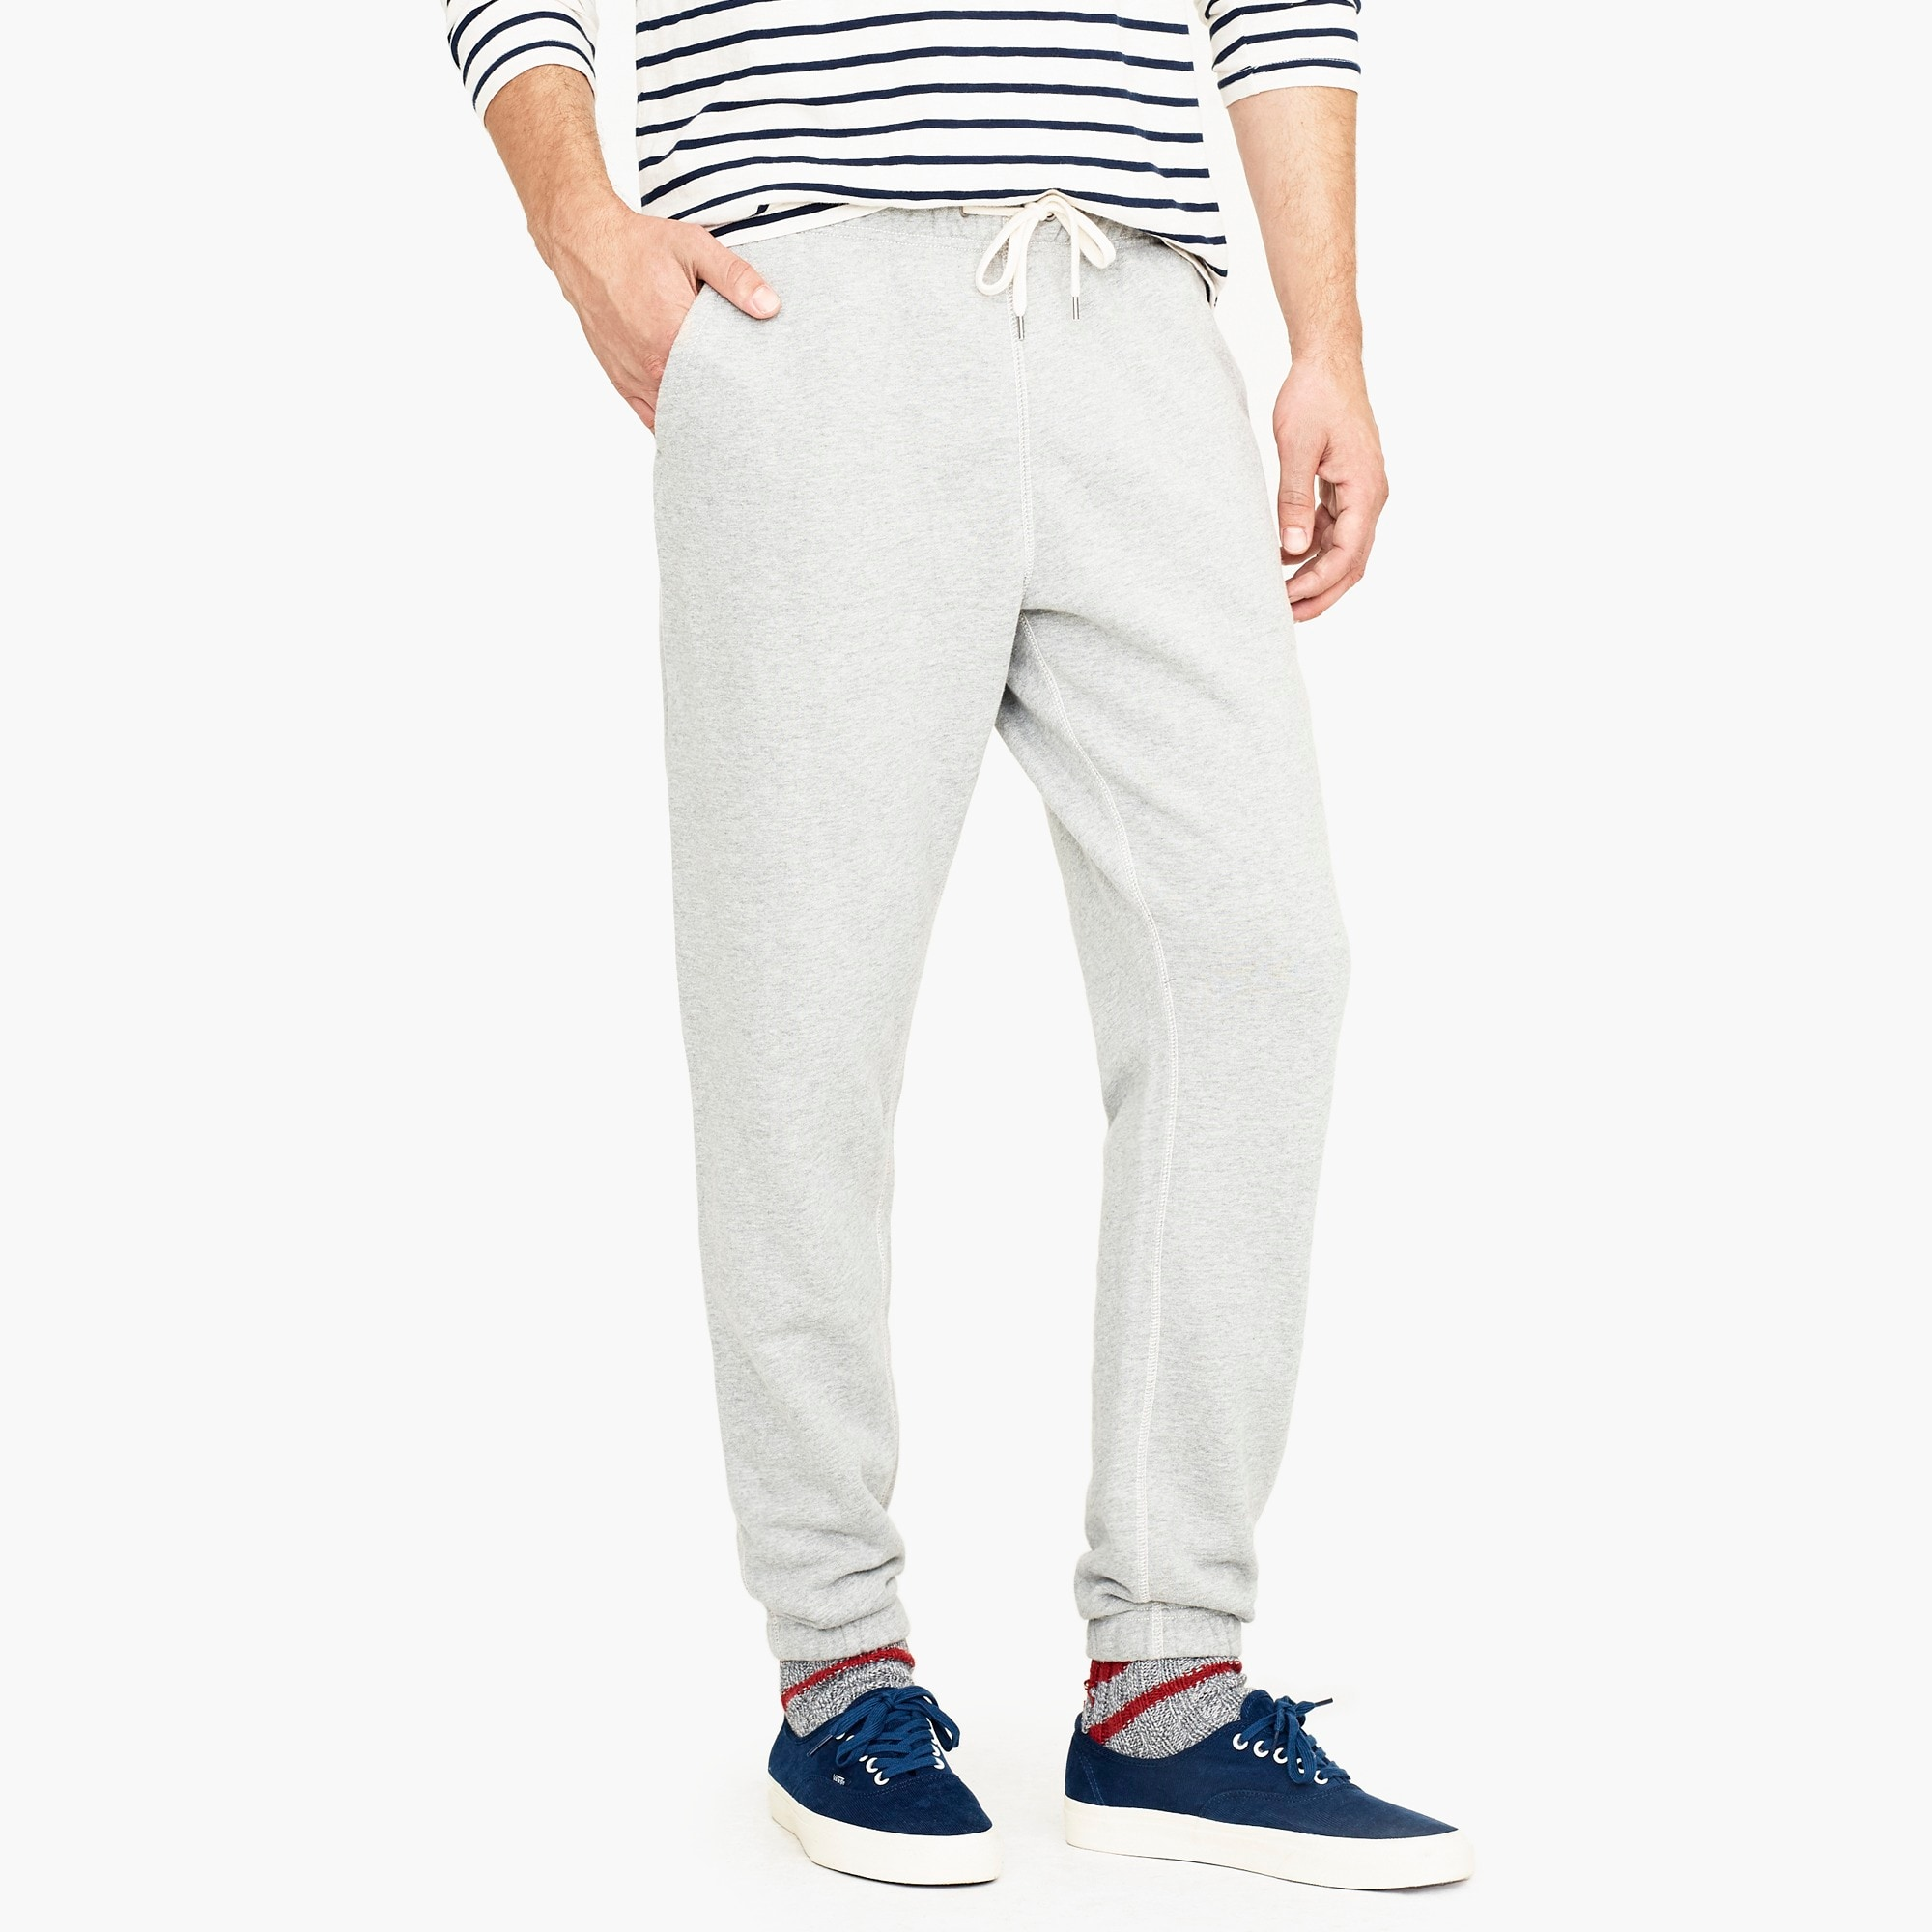 Image 2 for French terry sweatpants